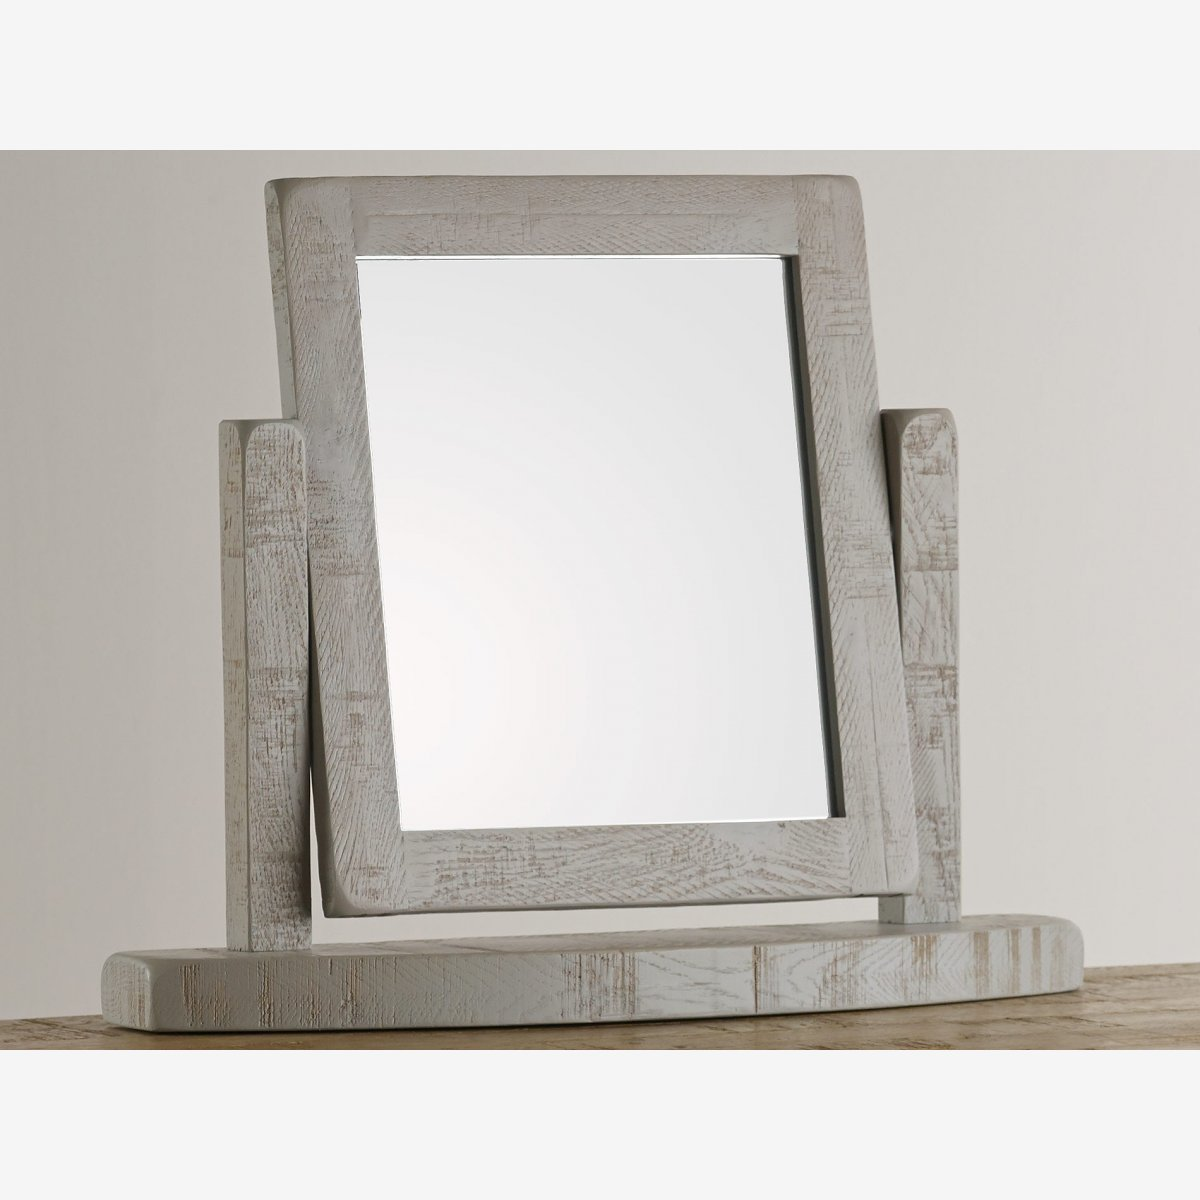 Clermont rough sawn oak and painted dressing table mirror for Dressing table mirror